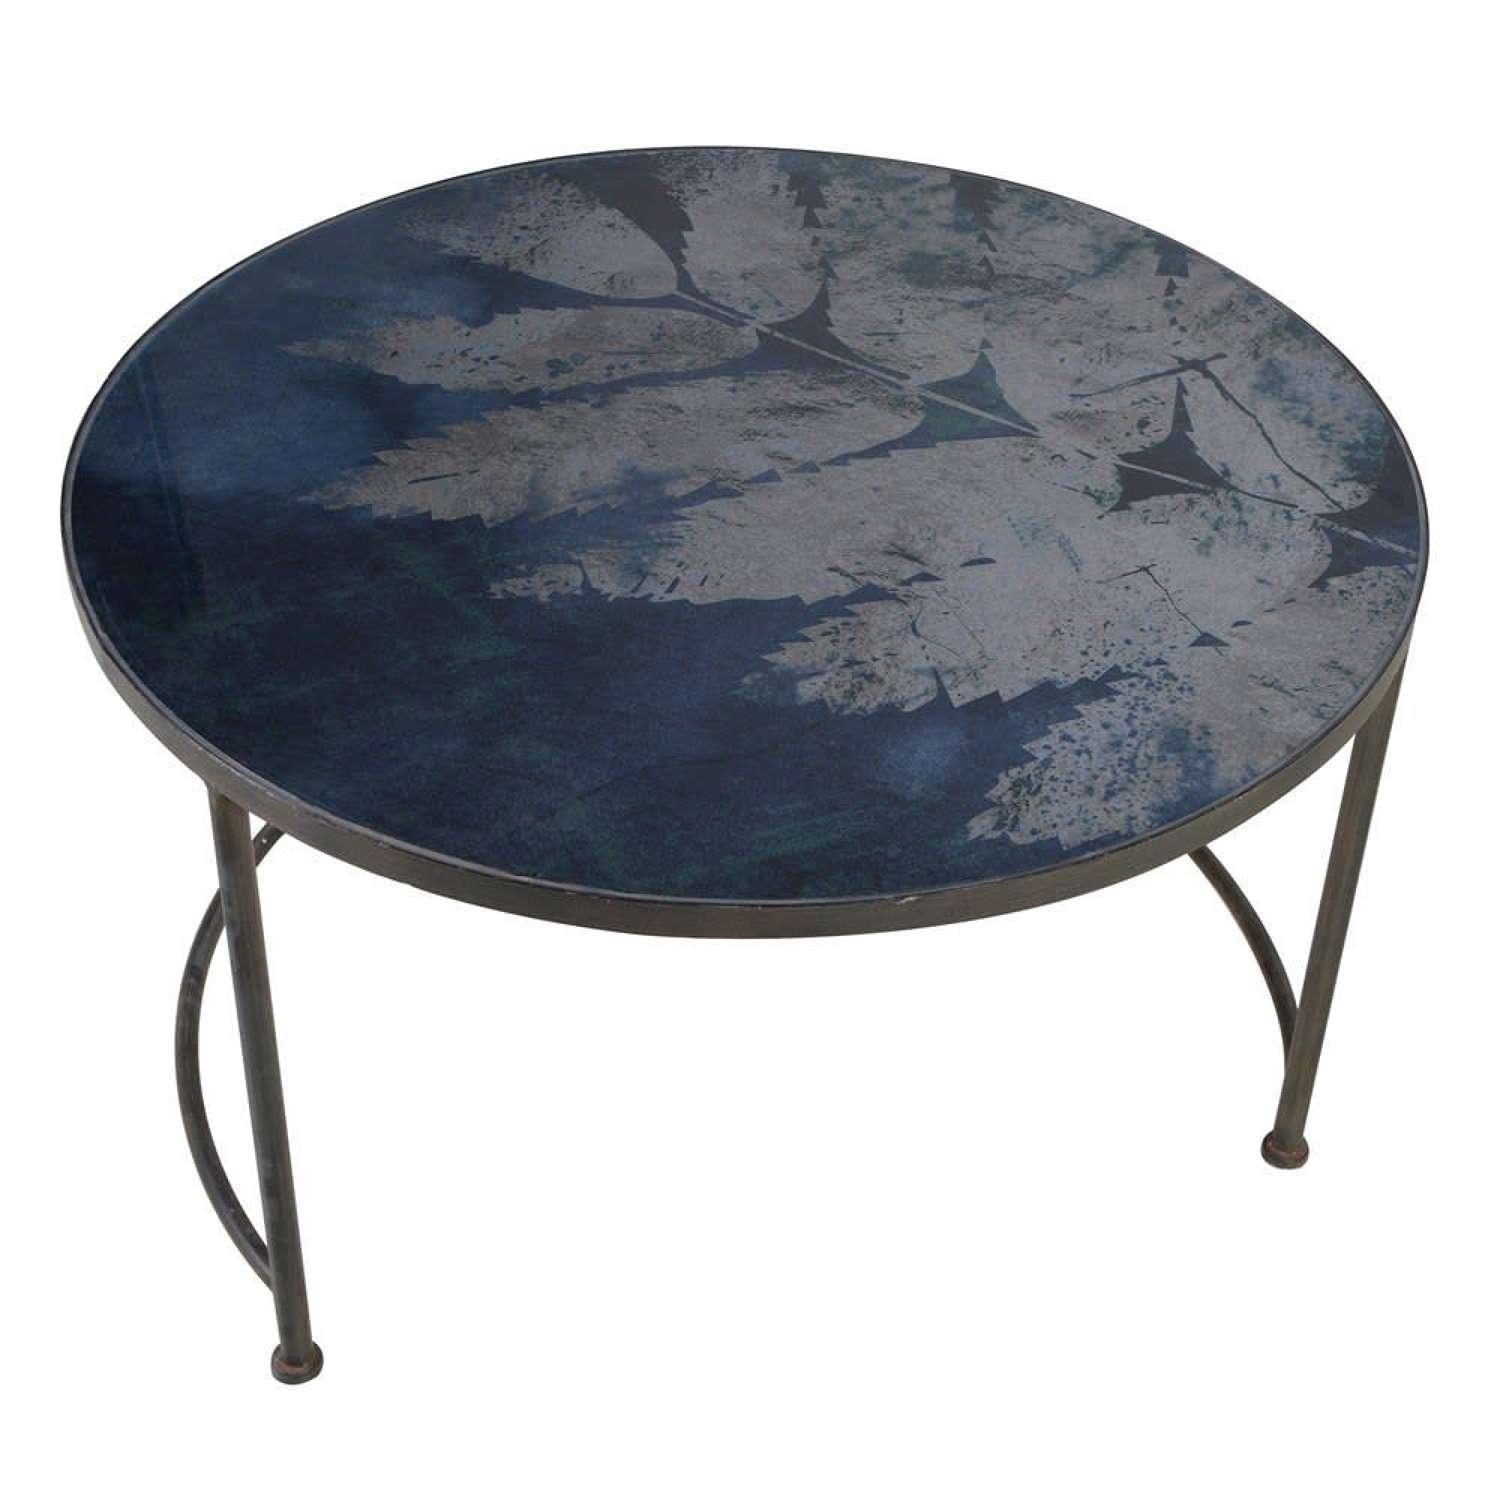 Iron Coffee Table with Blue Fern Glass Top